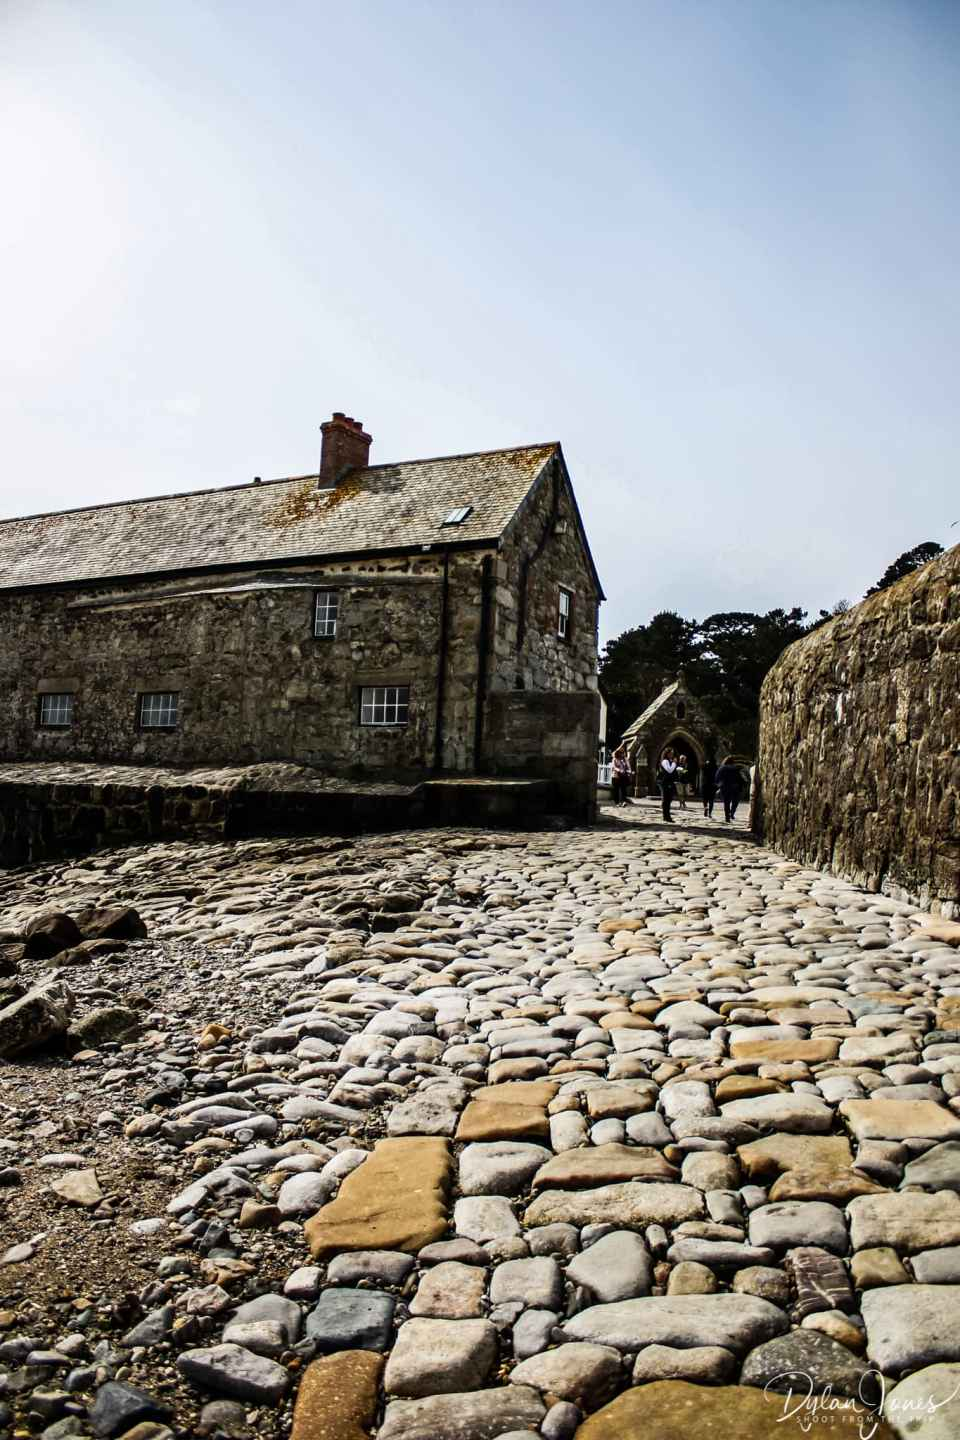 The cobbled entrance to St. Michael's Mount, South Cornwall coast